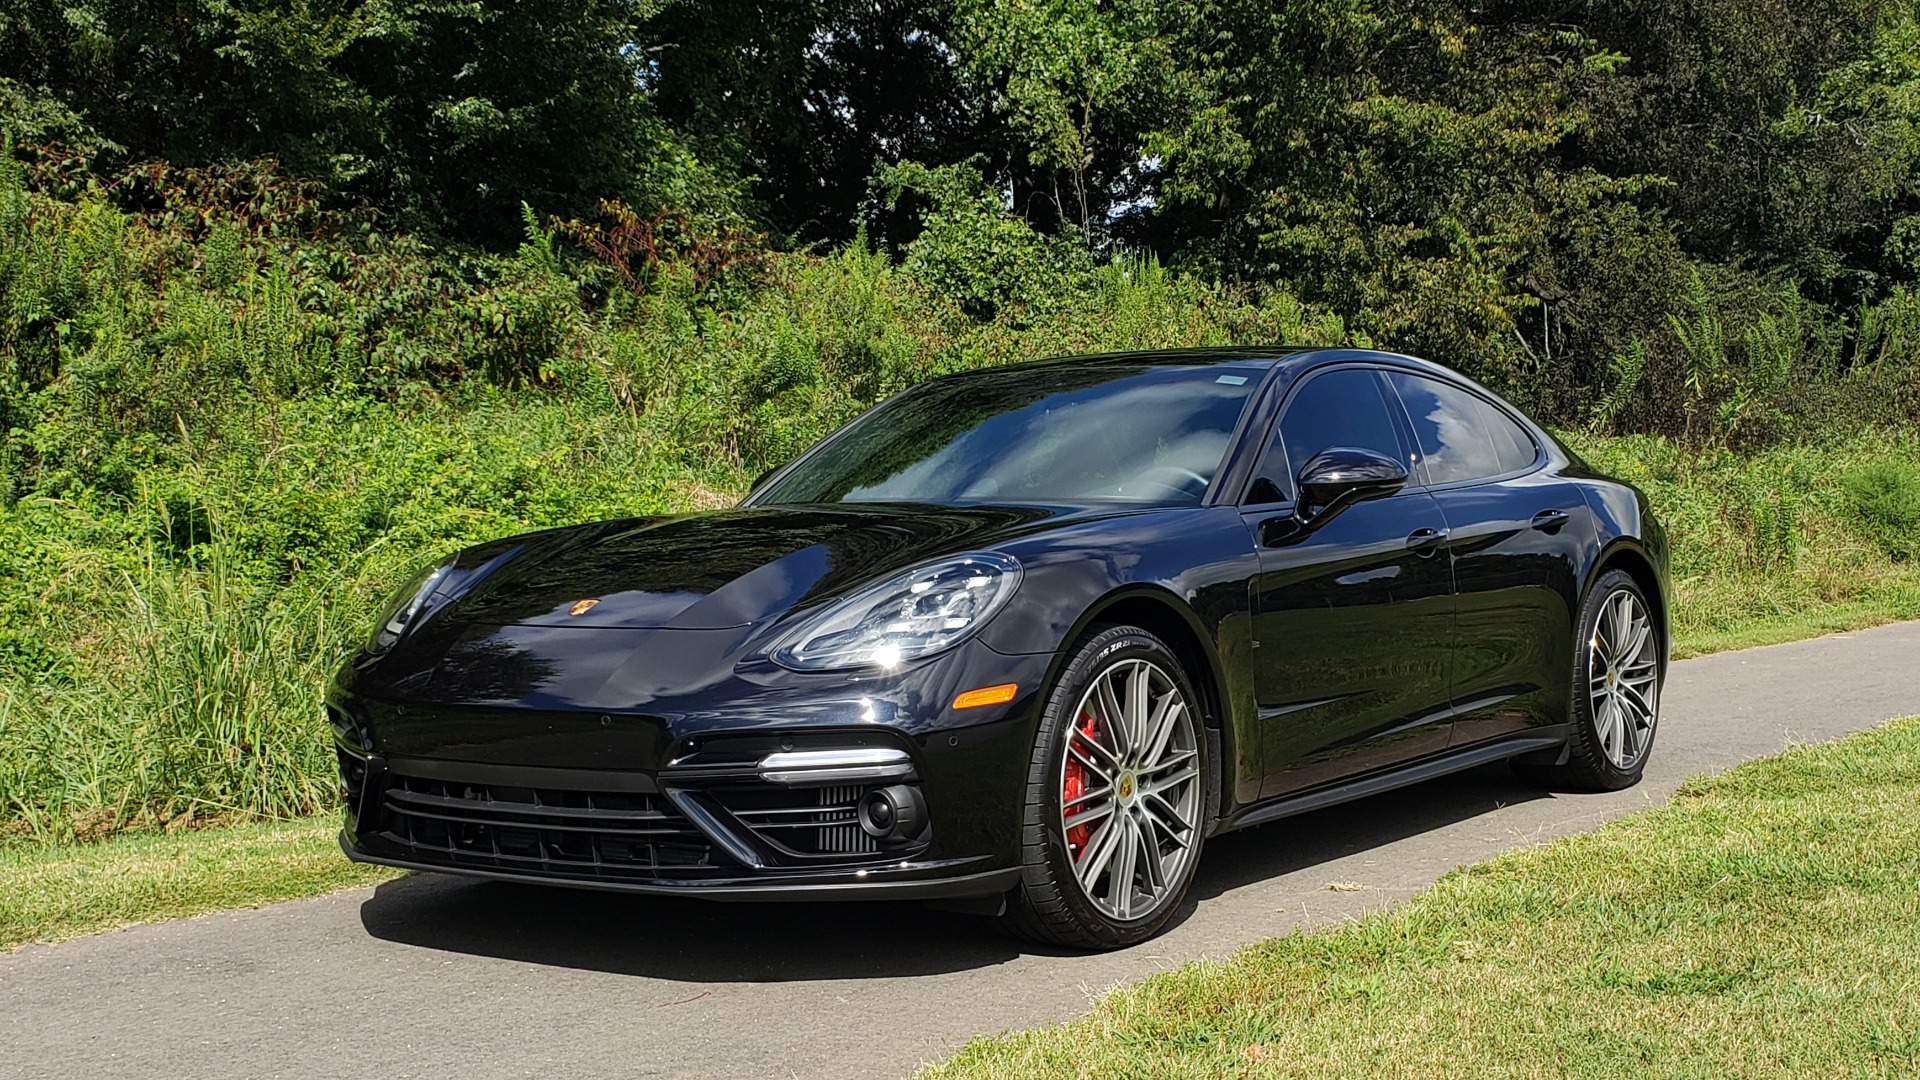 Used 2017 Porsche PANAMERA TURBO AWD / 4.0L V8 / AUTO / NAV / BOSE / REARVIEW / 21IN WHEELS for sale $98,995 at Formula Imports in Charlotte NC 28227 3